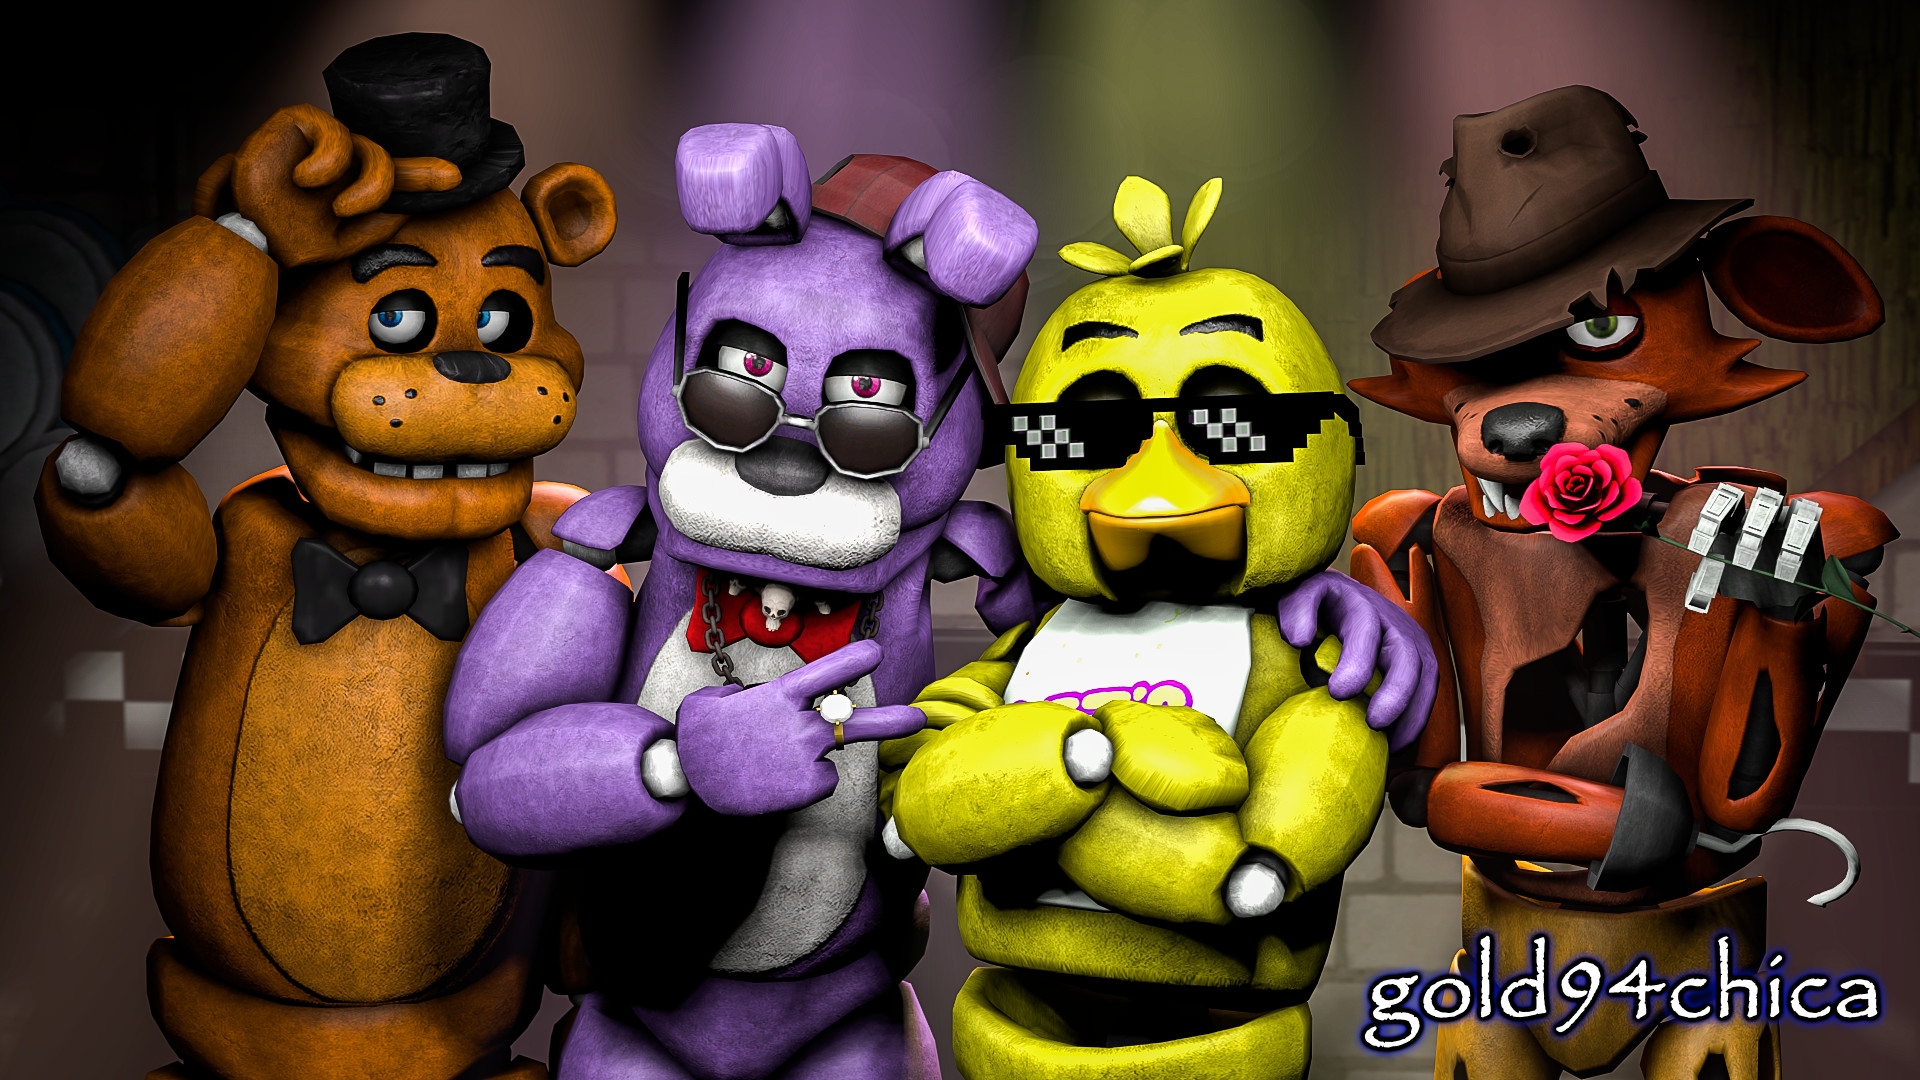 Res: 1920x1080, ... Epic Friends Forever (FNAF SFM Wallpaper) by gold94chica